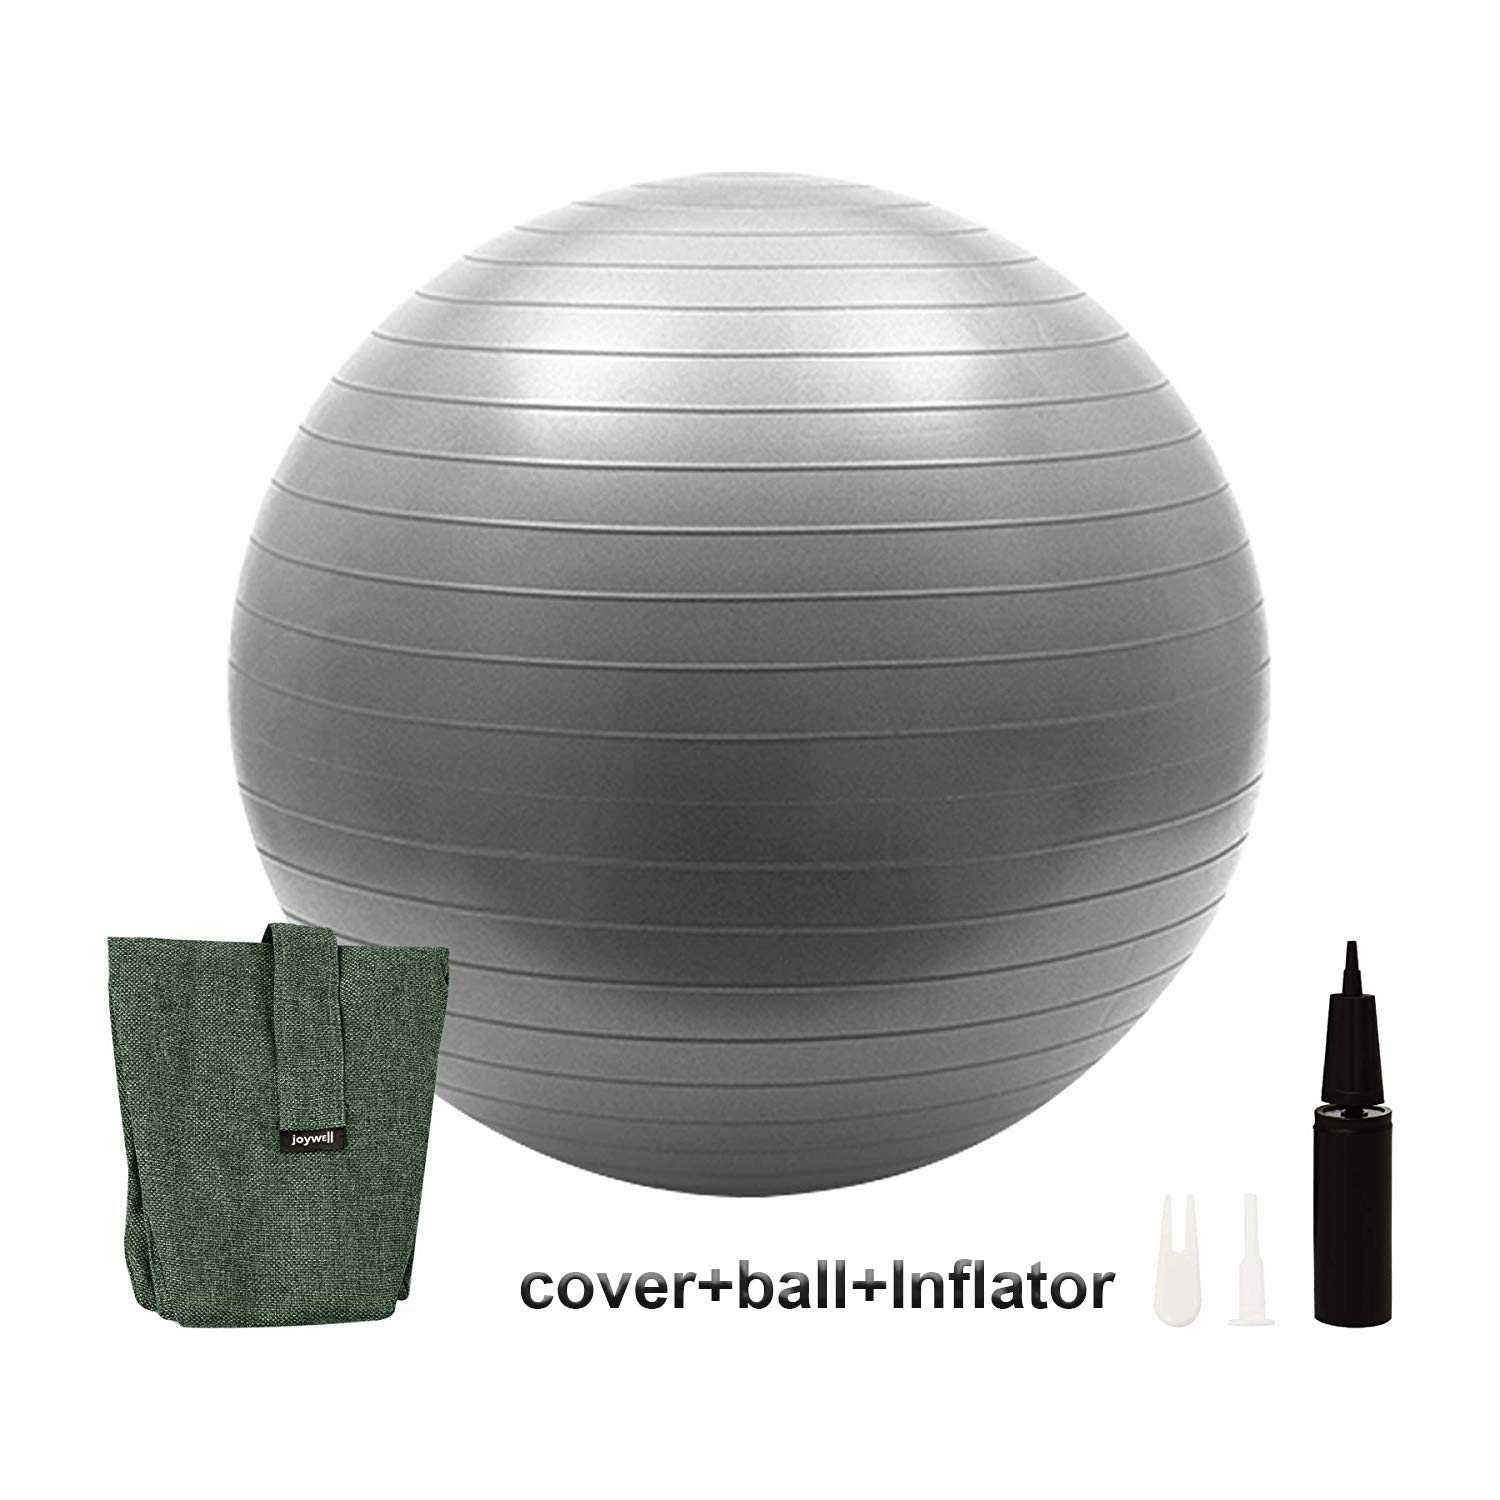 Joywell Exercise Ball with Multifunctional Cover Included Pump, Yoga Fitness Stability Base, Sitting Ball Chair for Office Home Indoor Outdoor (65CM, Army Green)